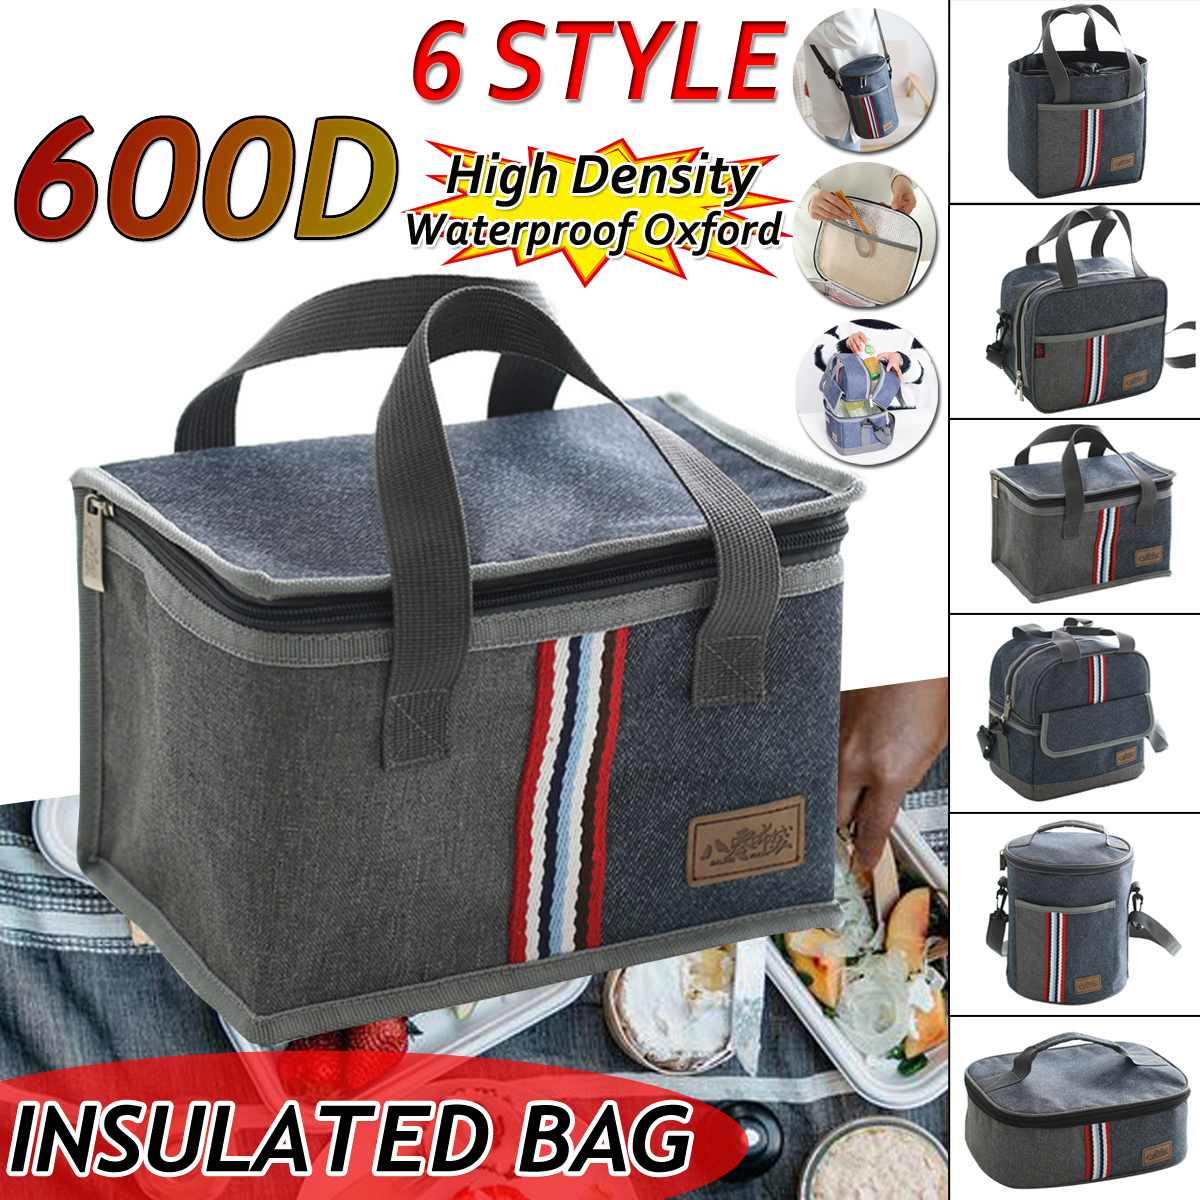 600D Oxford Cloth Lunch Cooler Bag Insulation Folding Picnic Portable Ice Pack Food Thermal Bag Food Delivery Bag Insulated Bag